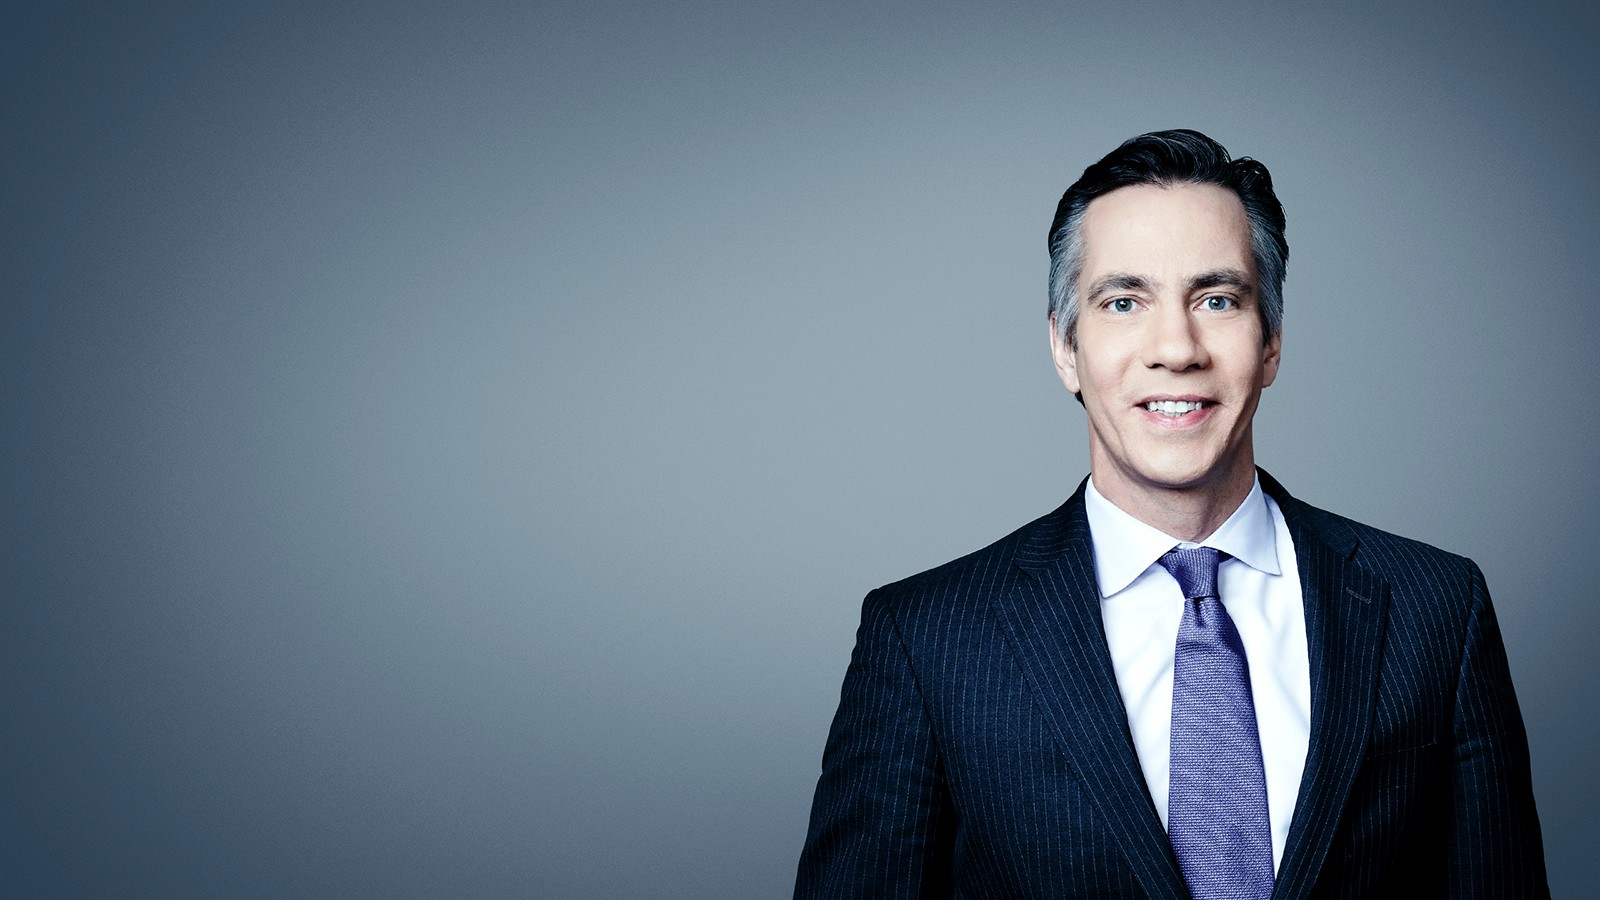 how tall is jim sciutto